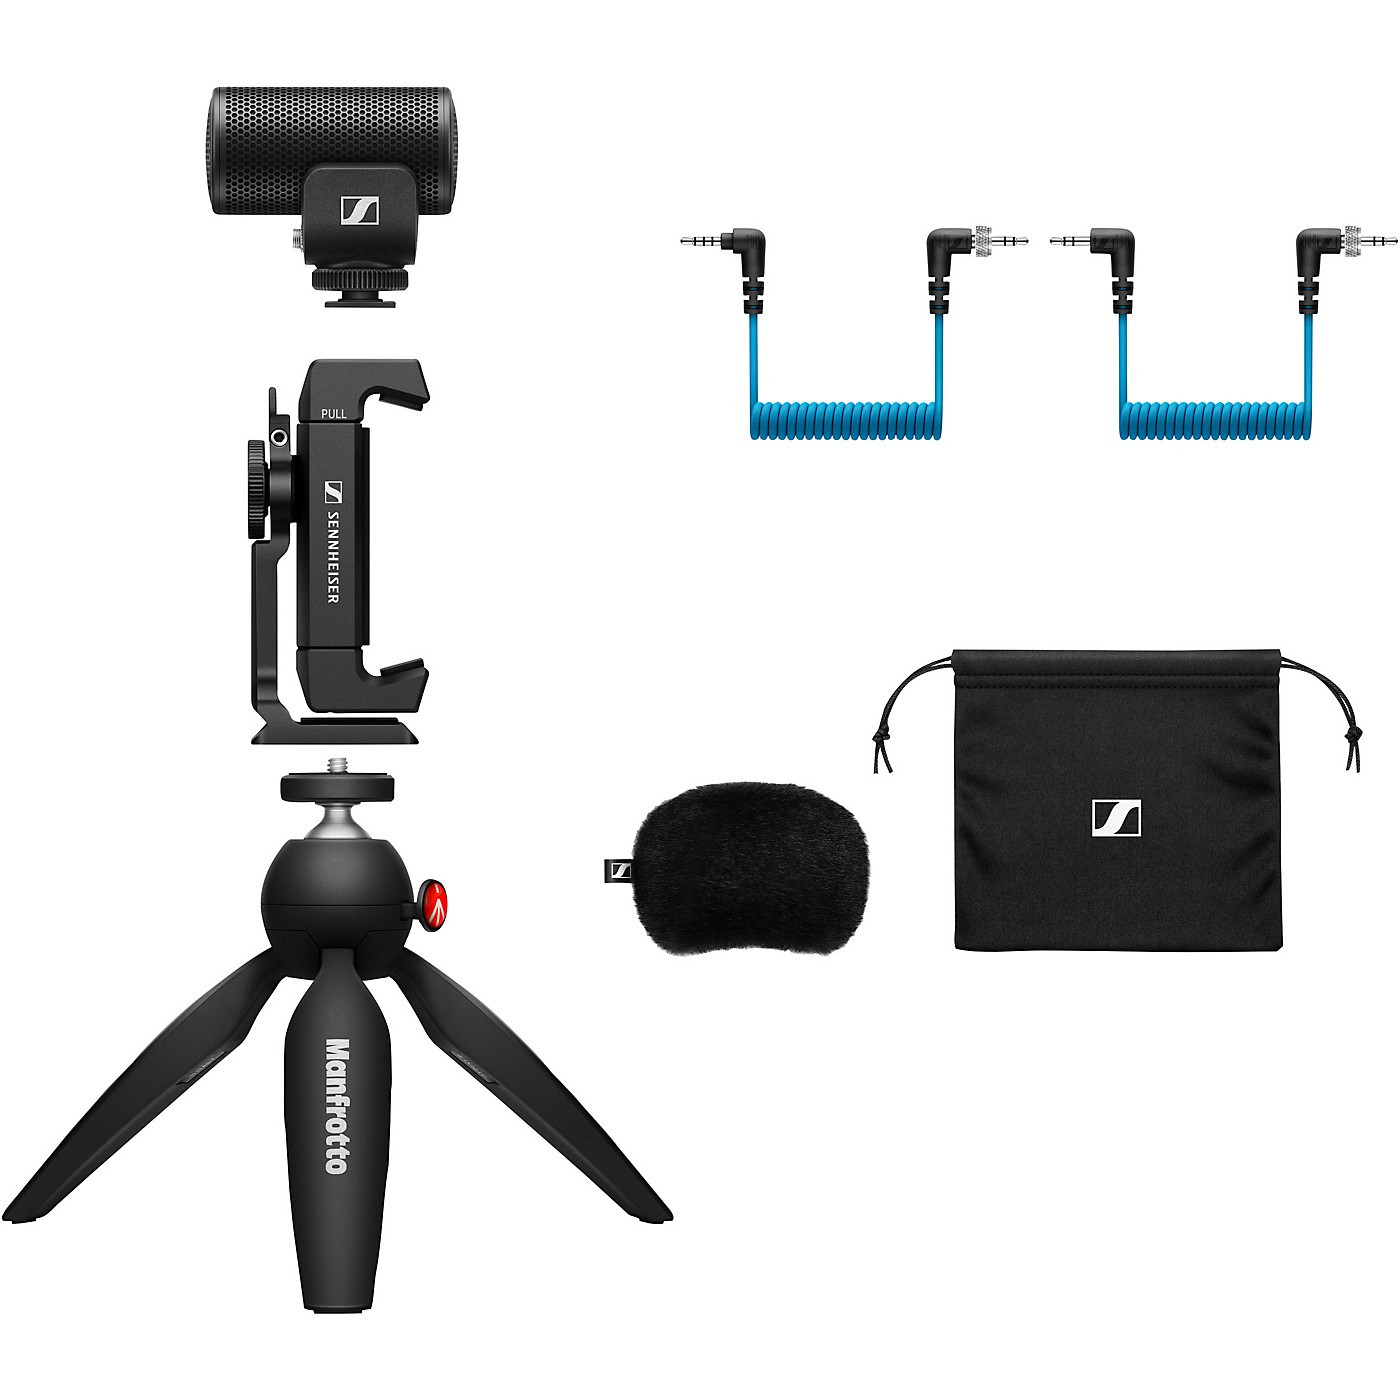 Sennheiser MKE 200 MOBILE KIT - Includes MKE 200 Directional On-Camera Microphone, Manfrotto PIXI Mini Tripod and Sennheiser Smartphone Clamp thumbnail